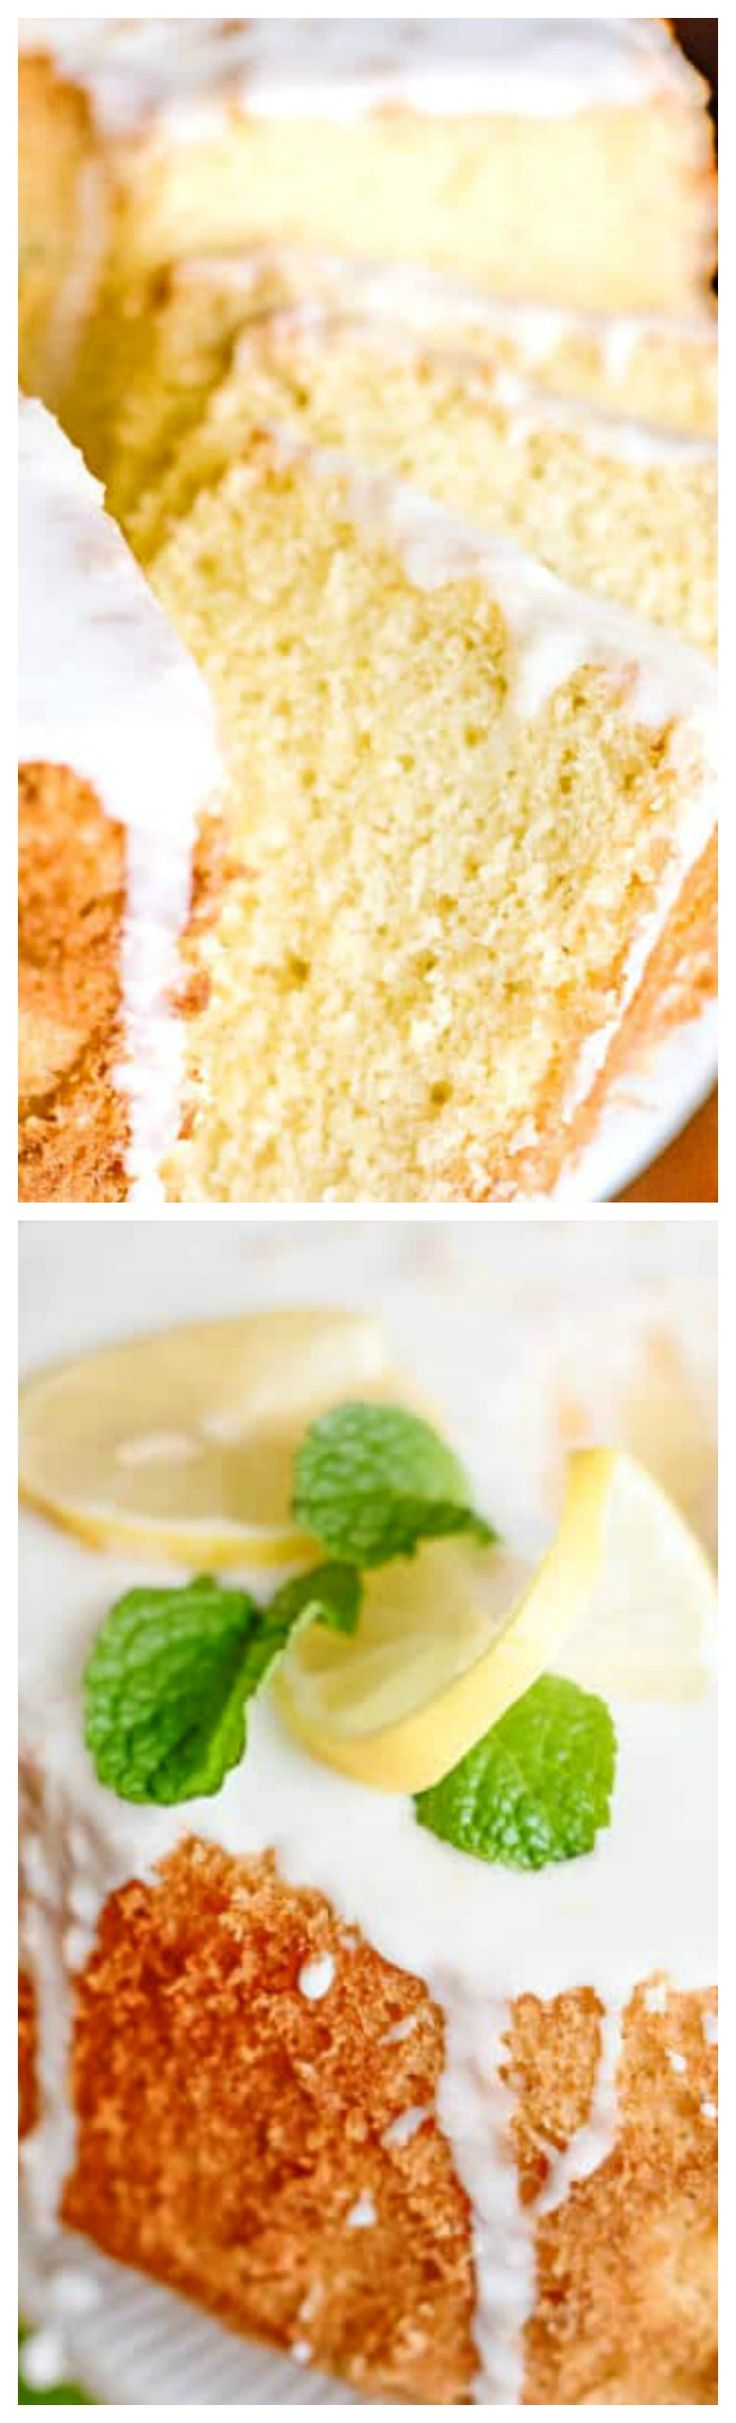 Lemon Chiffon Cake ~ Light, fluffy, lemon chiffon cake made with fresh lemons... Make a simple lemon glaze to top the cake for a simply gorgeous lemon dessert recipe.